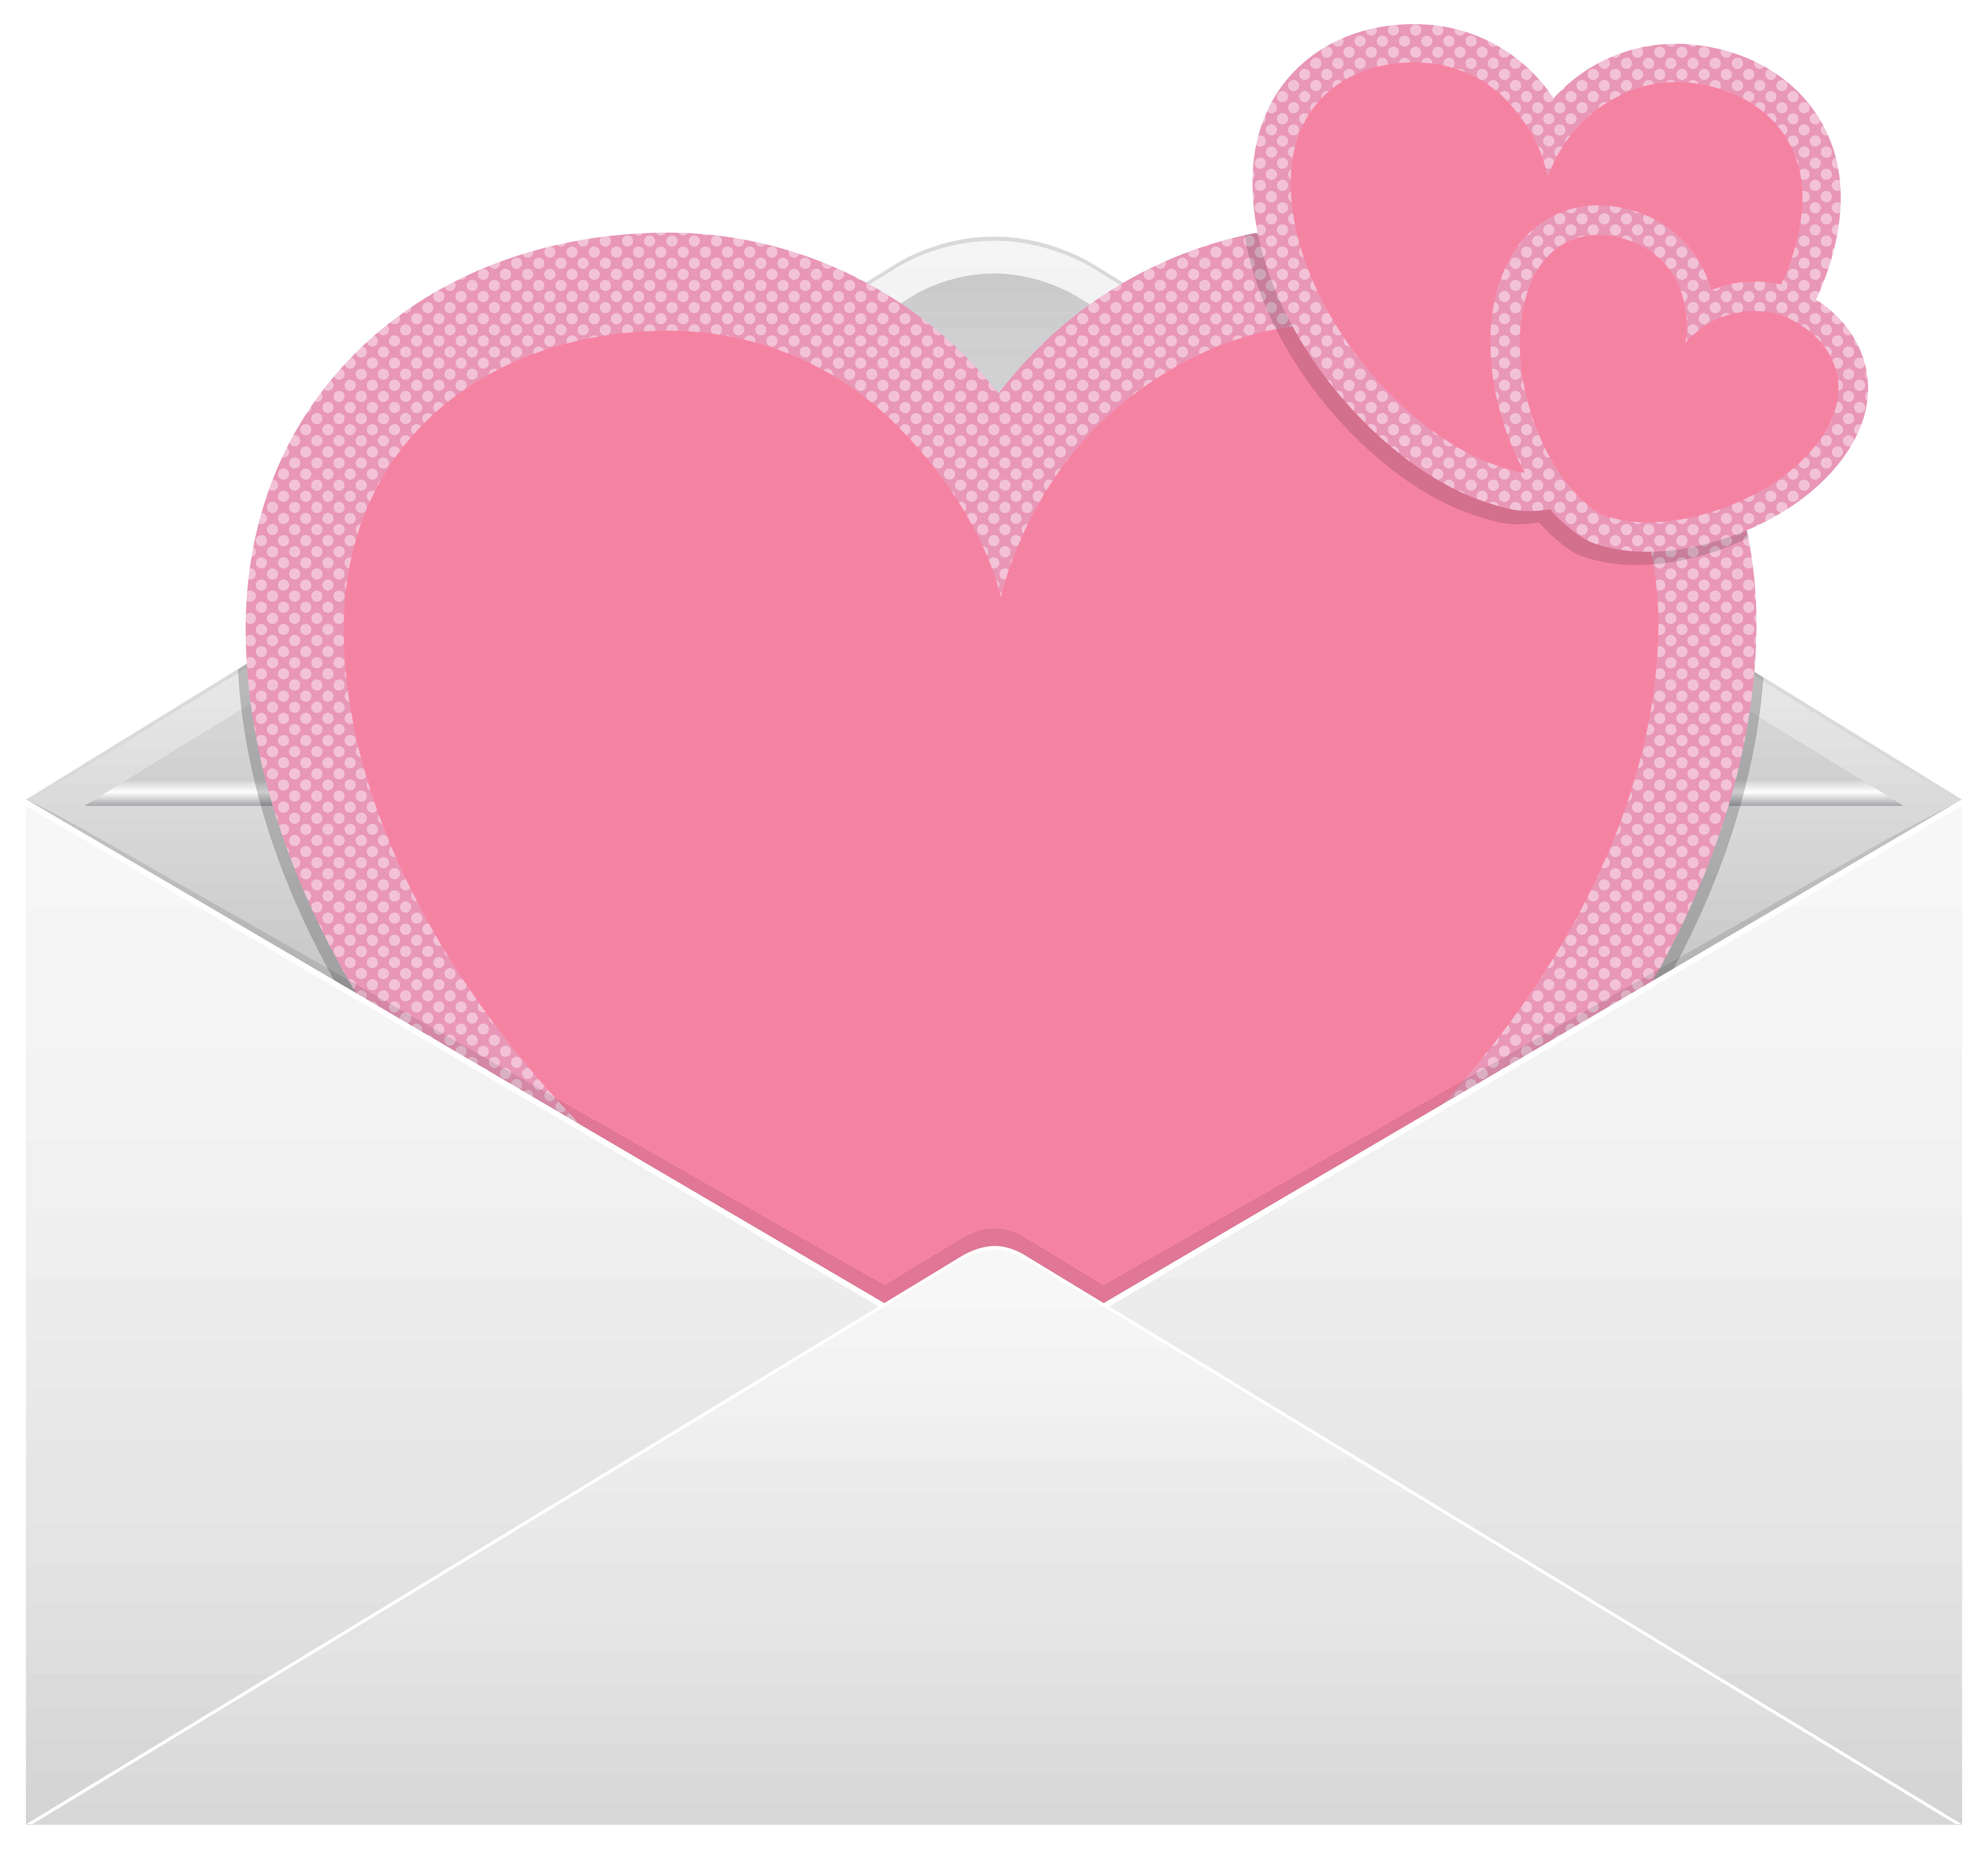 8000x7440 Envelope With Pink Hearts Transparent Png Clip Art Image